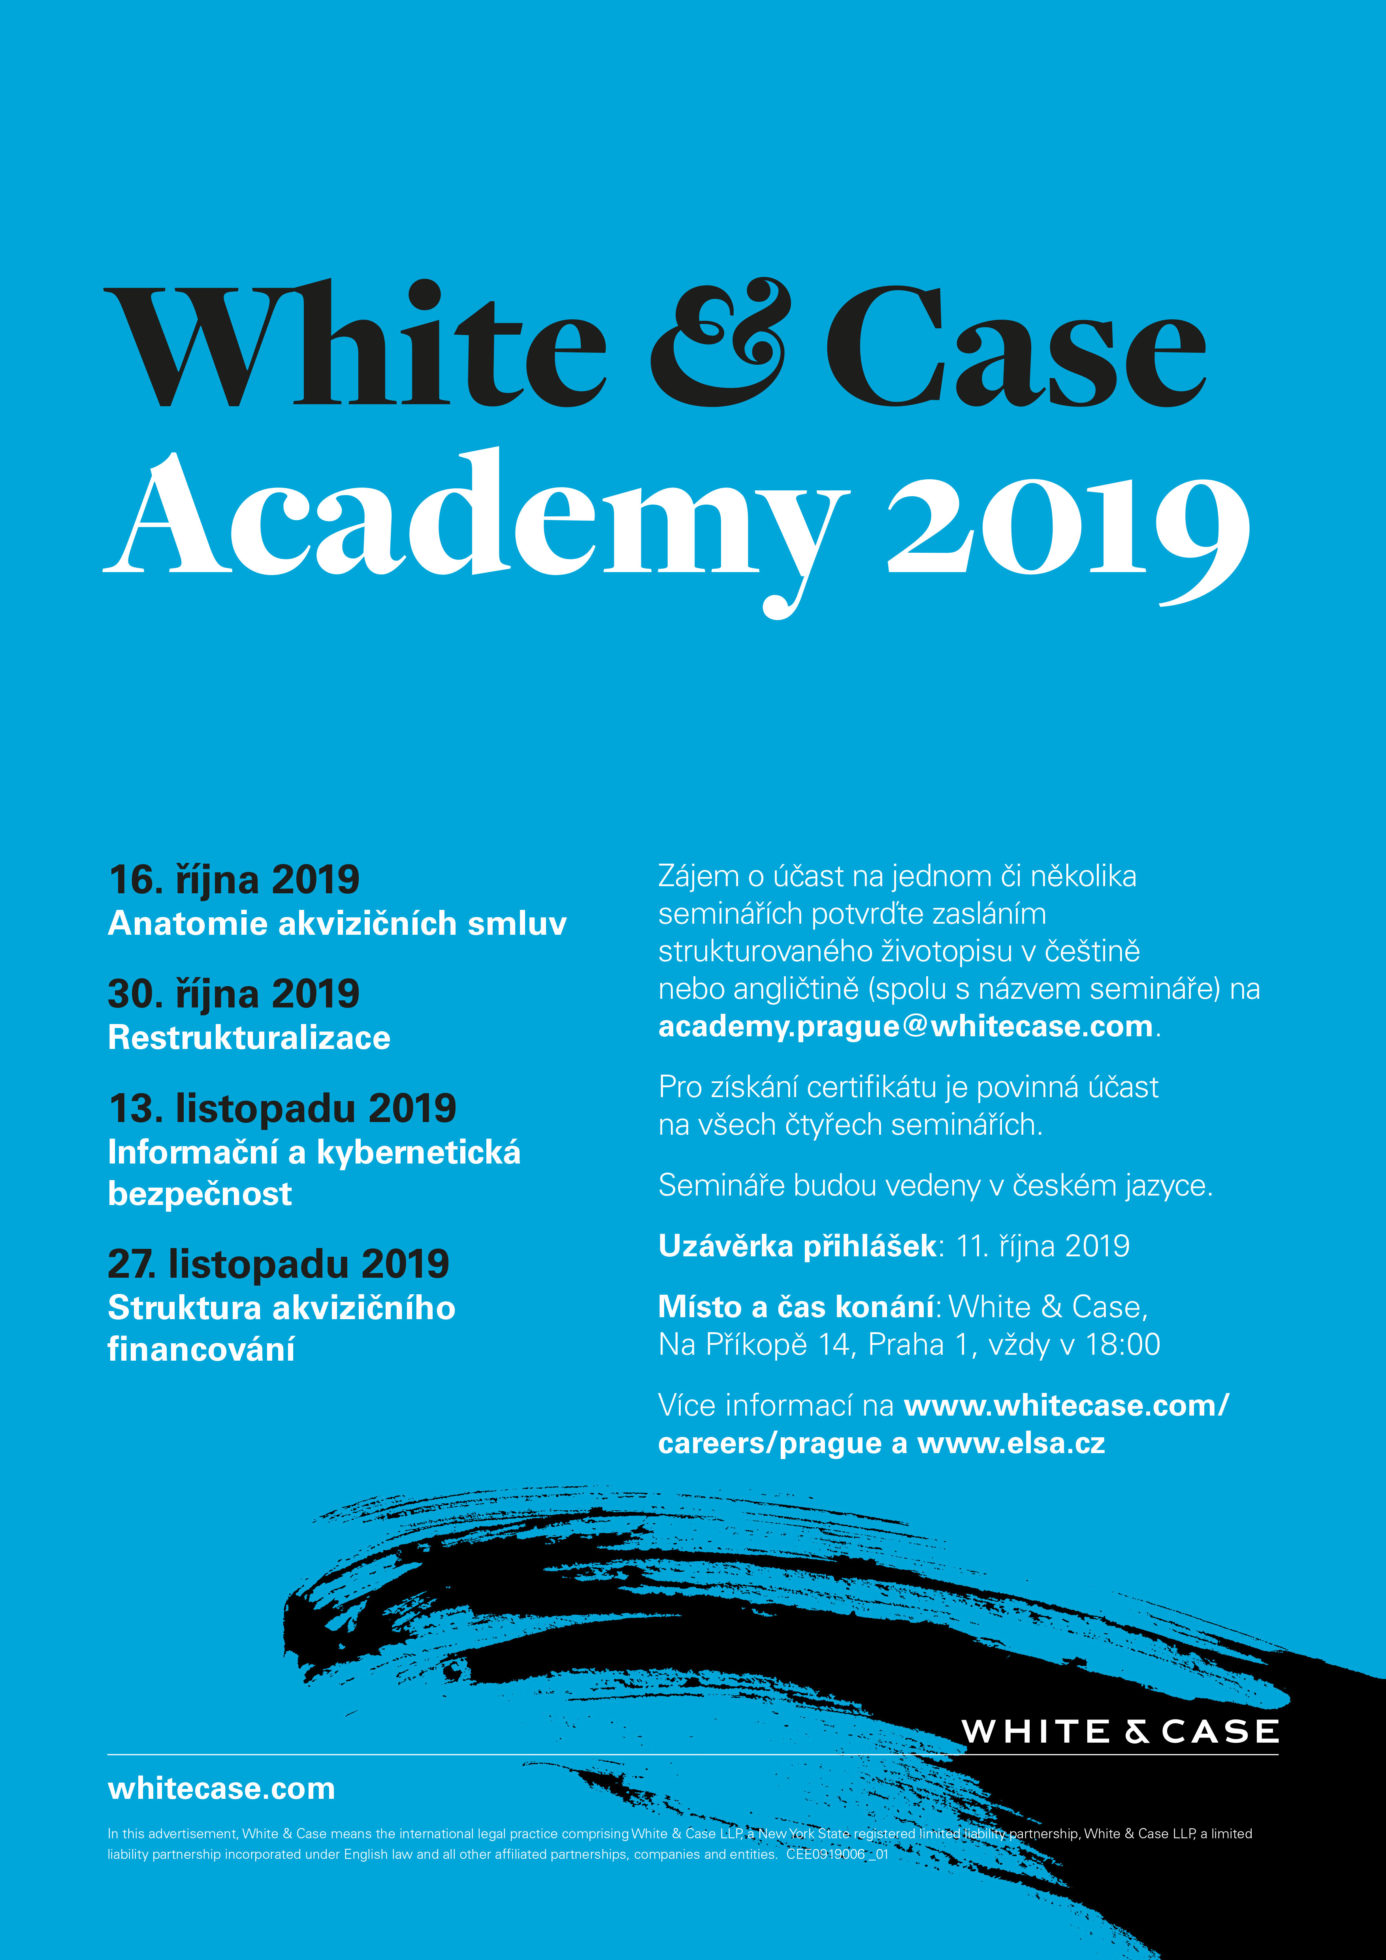 White & Case Academy 2019